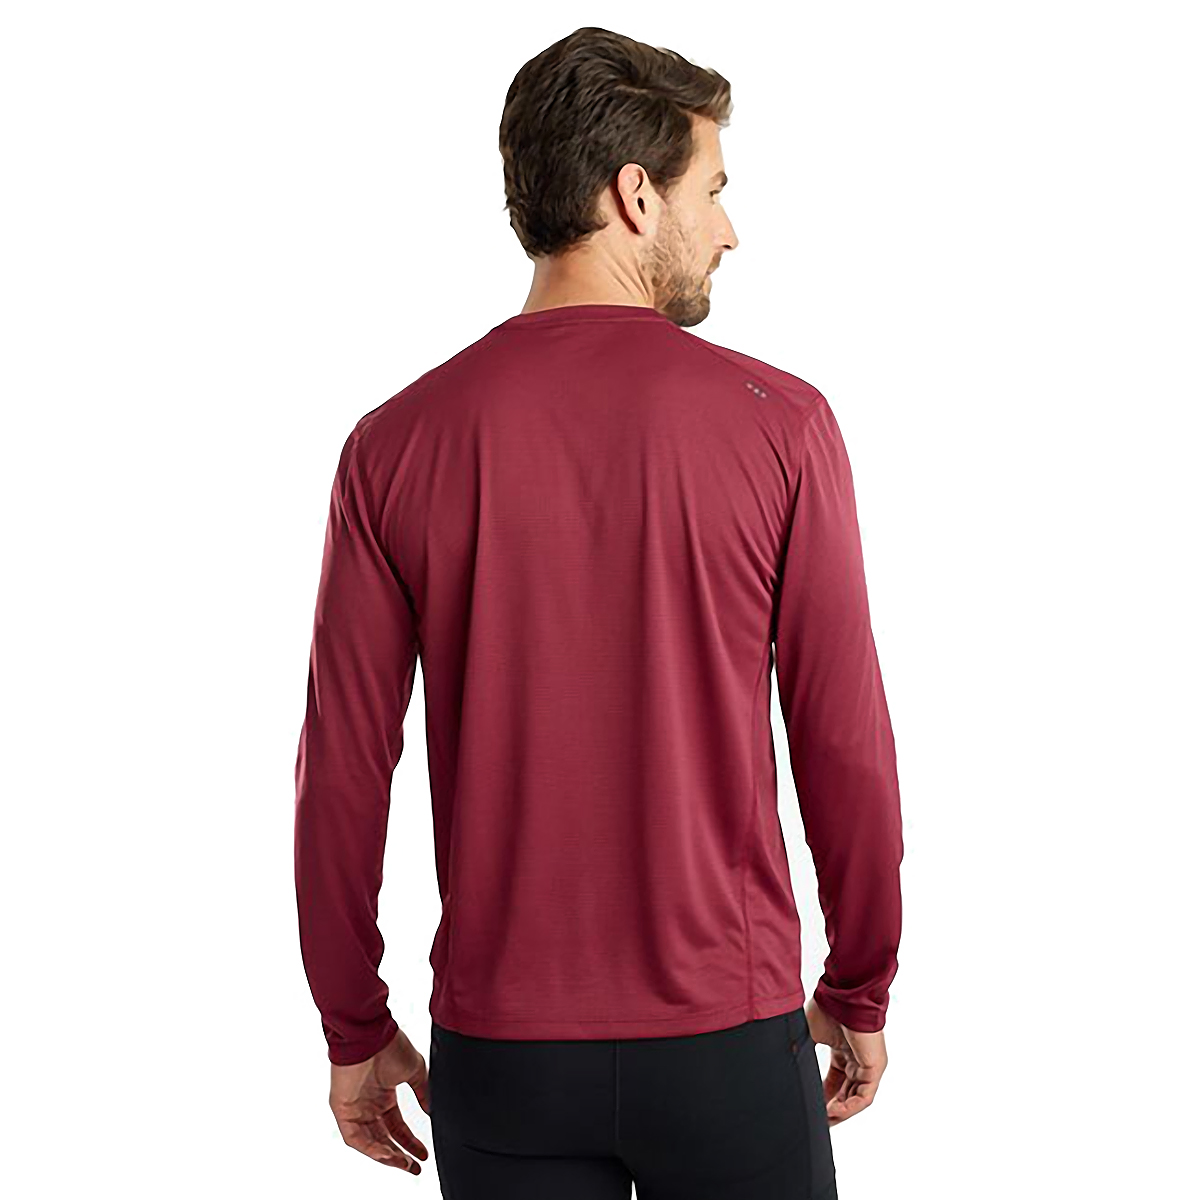 Men's Saucony Stopwatch Long Sleeve, , large, image 2